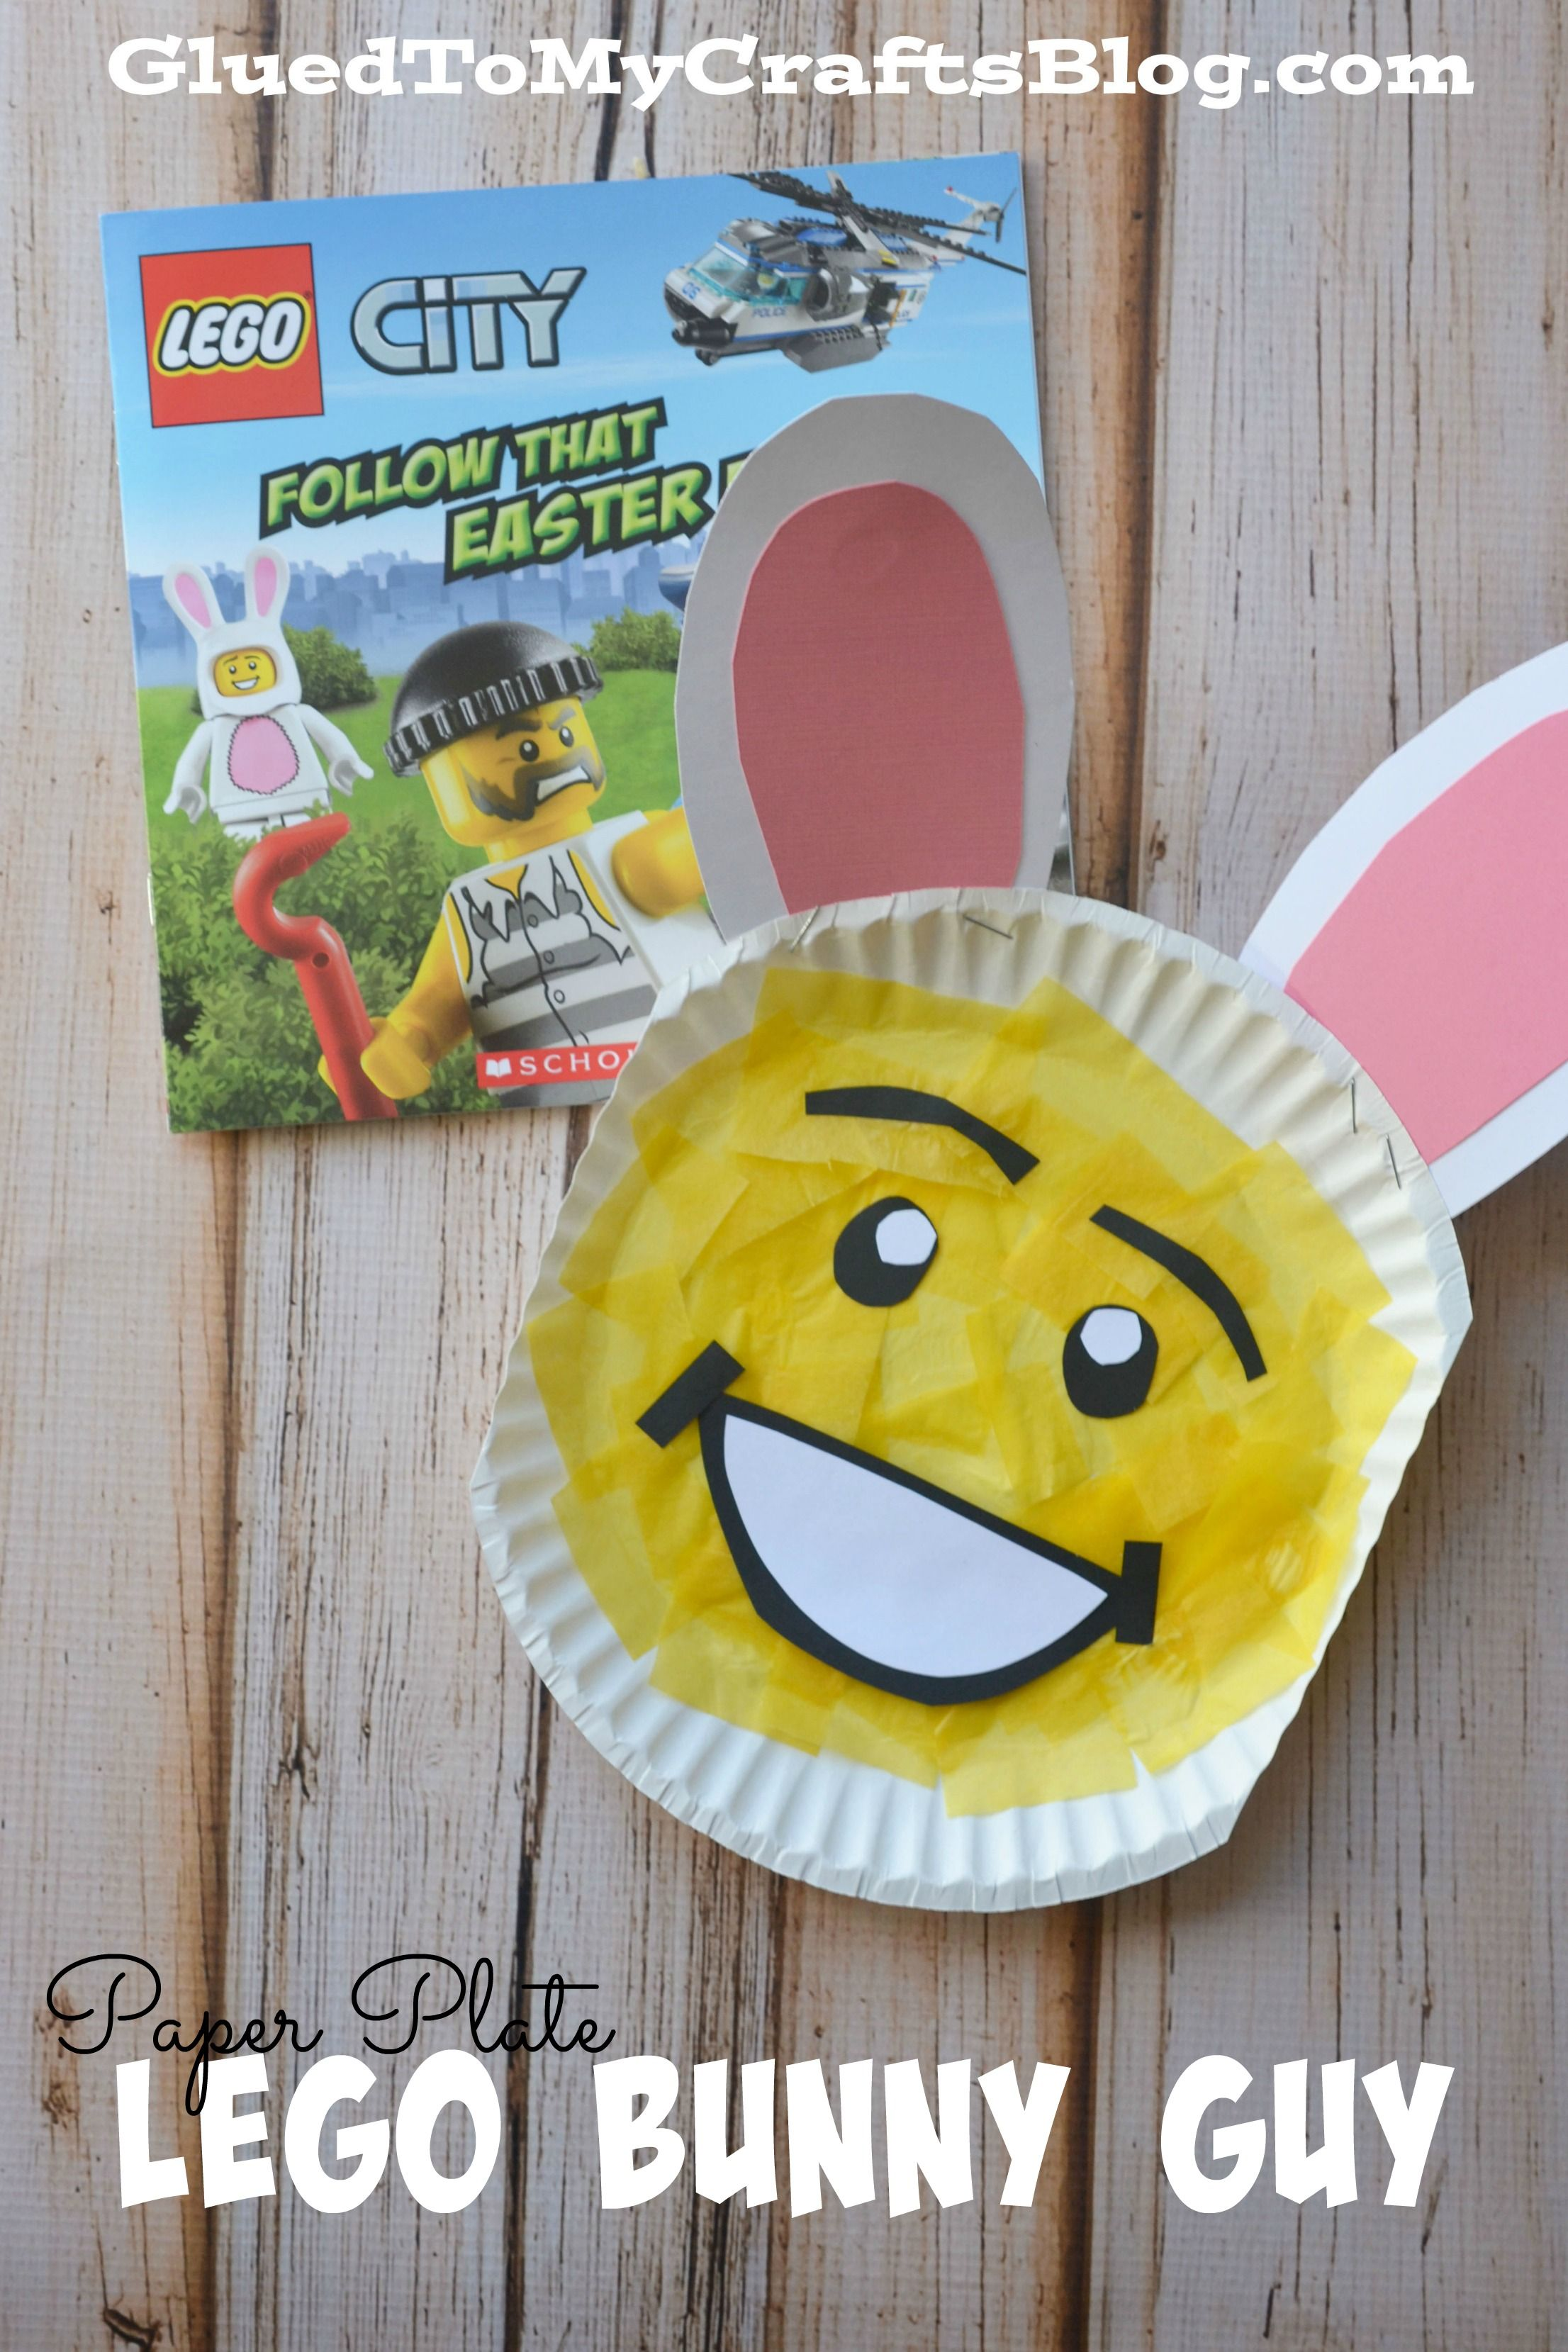 Paper plate lego bunny guy kid craft crafts paper and bunnies